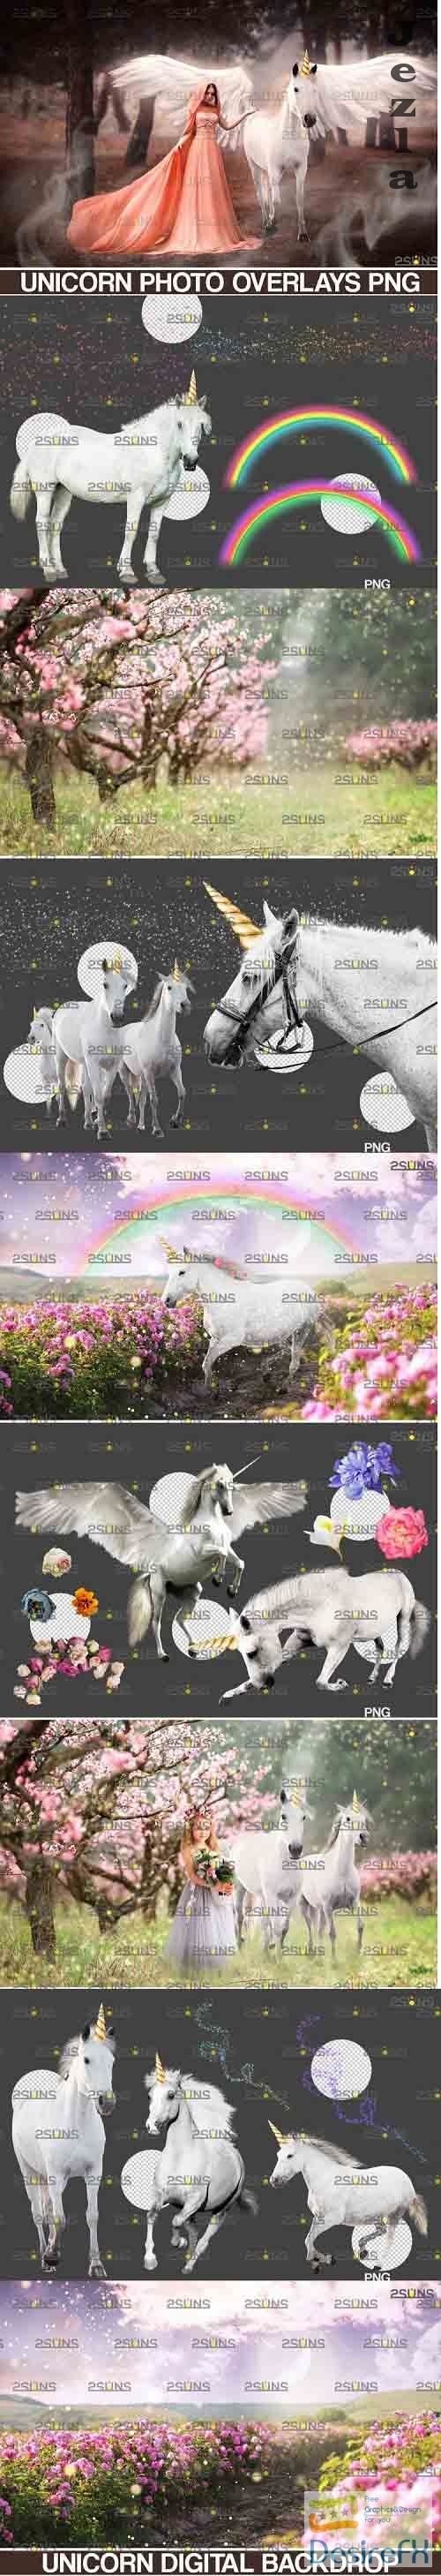 Unicorn overlay & Flower backdrop, White Horse png overlays - 738327